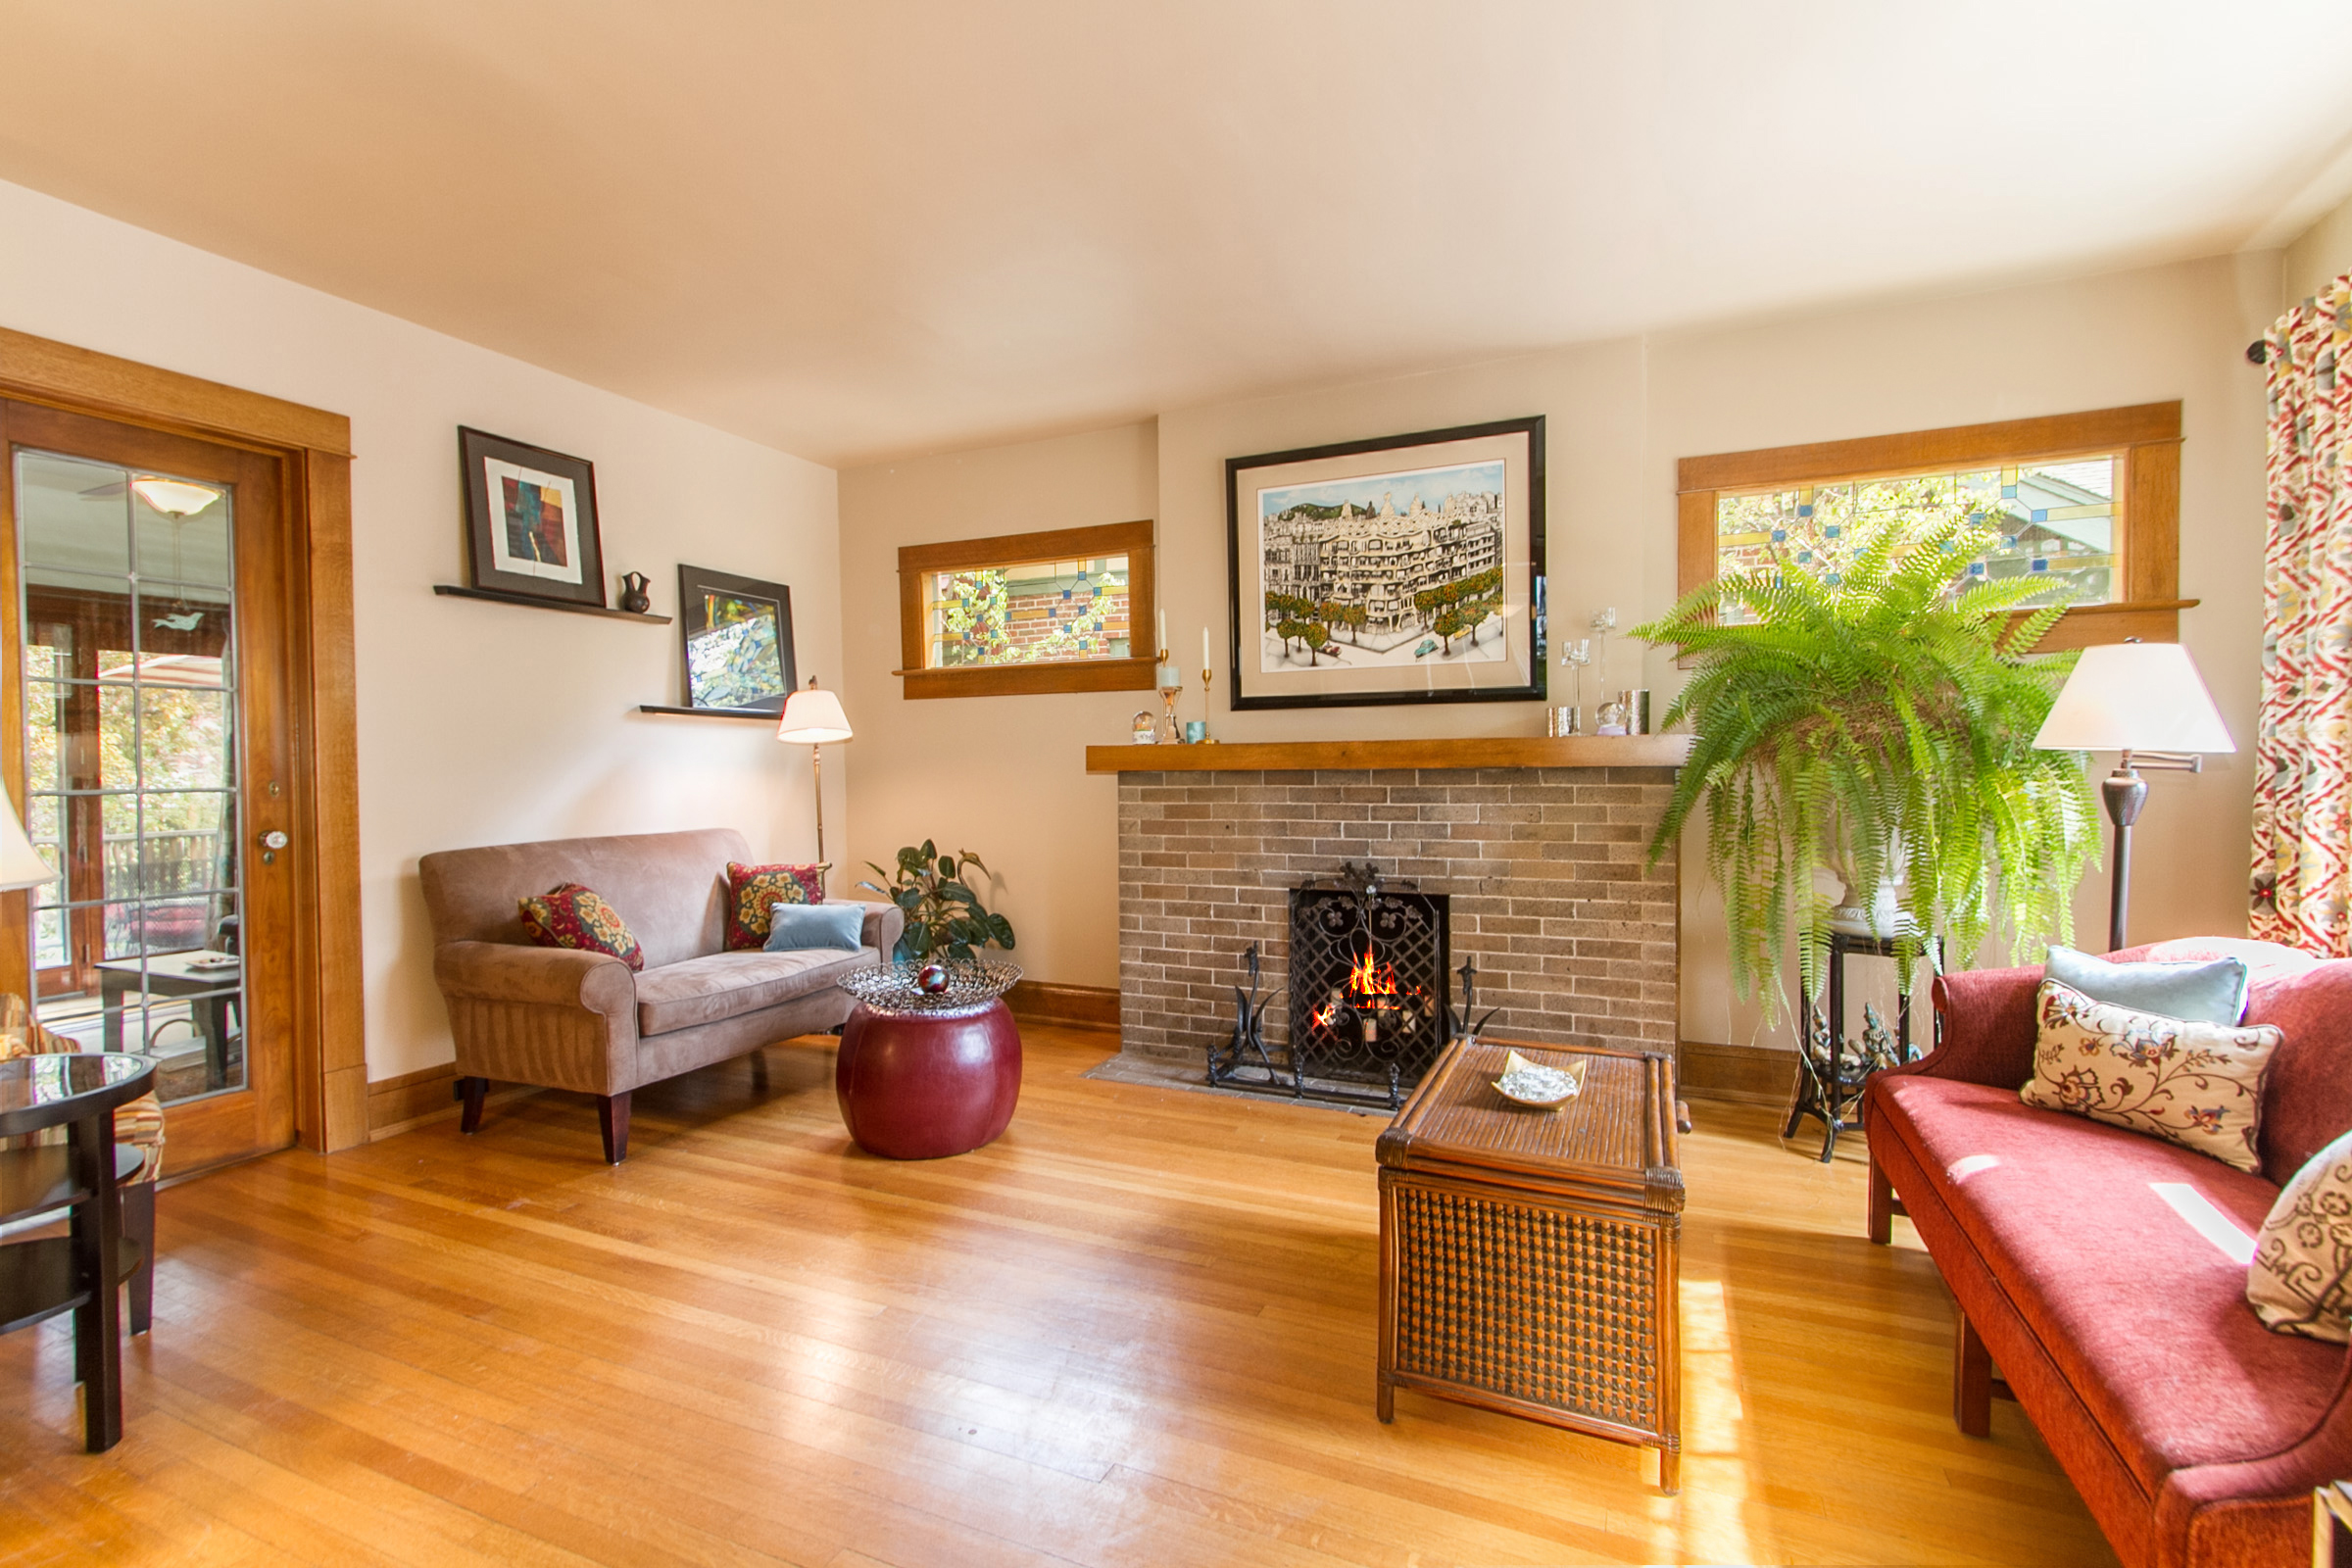 1246129_Living-Room-With-Vintage-Fireplace_high.jpg